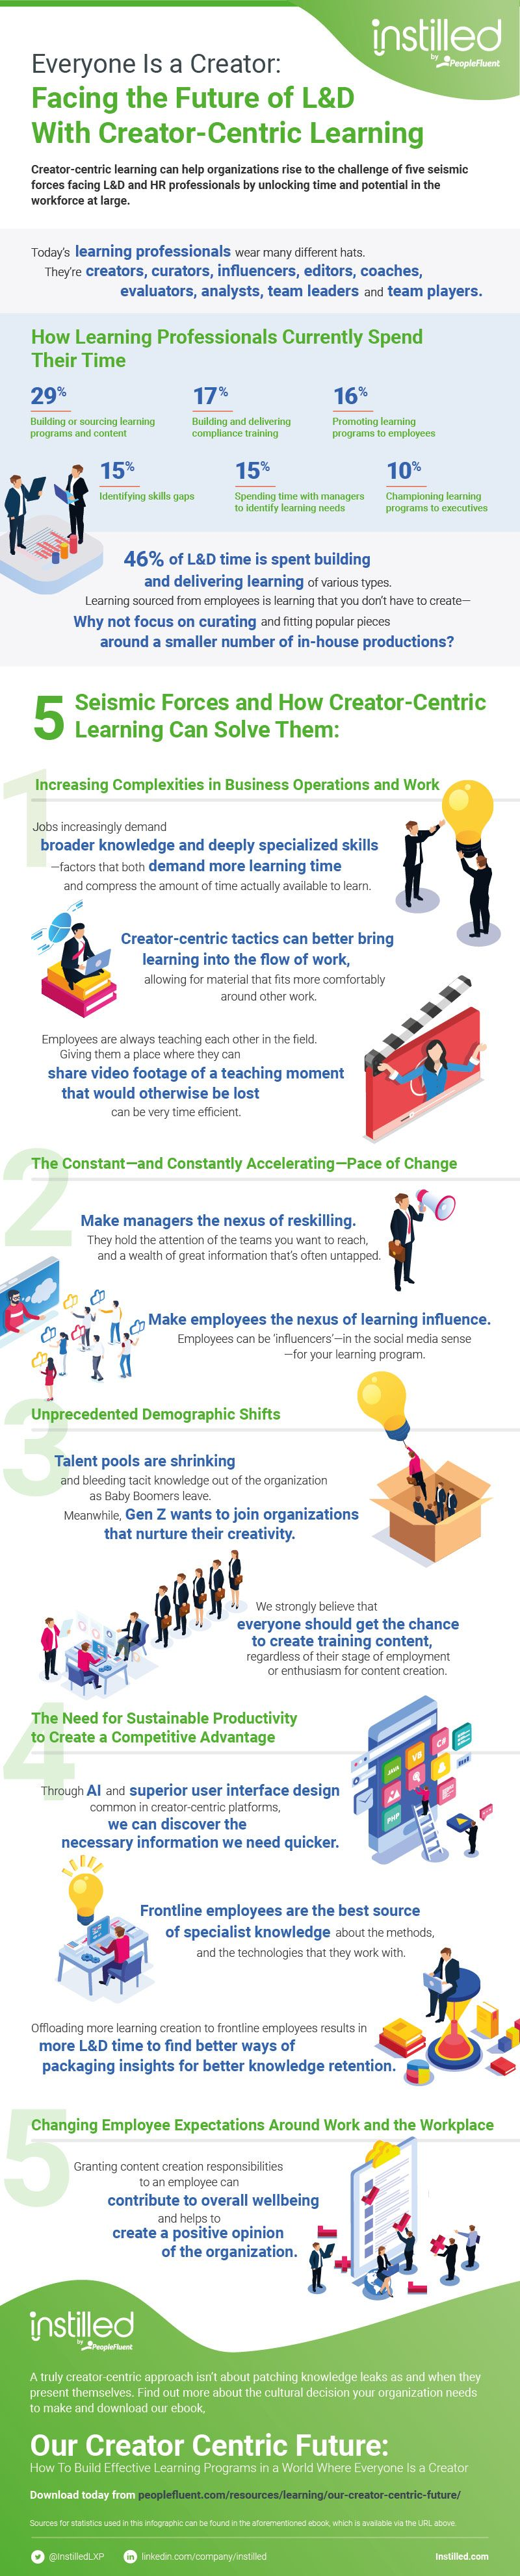 Instilled by PeopleFluent Facing the future of L&D infographic